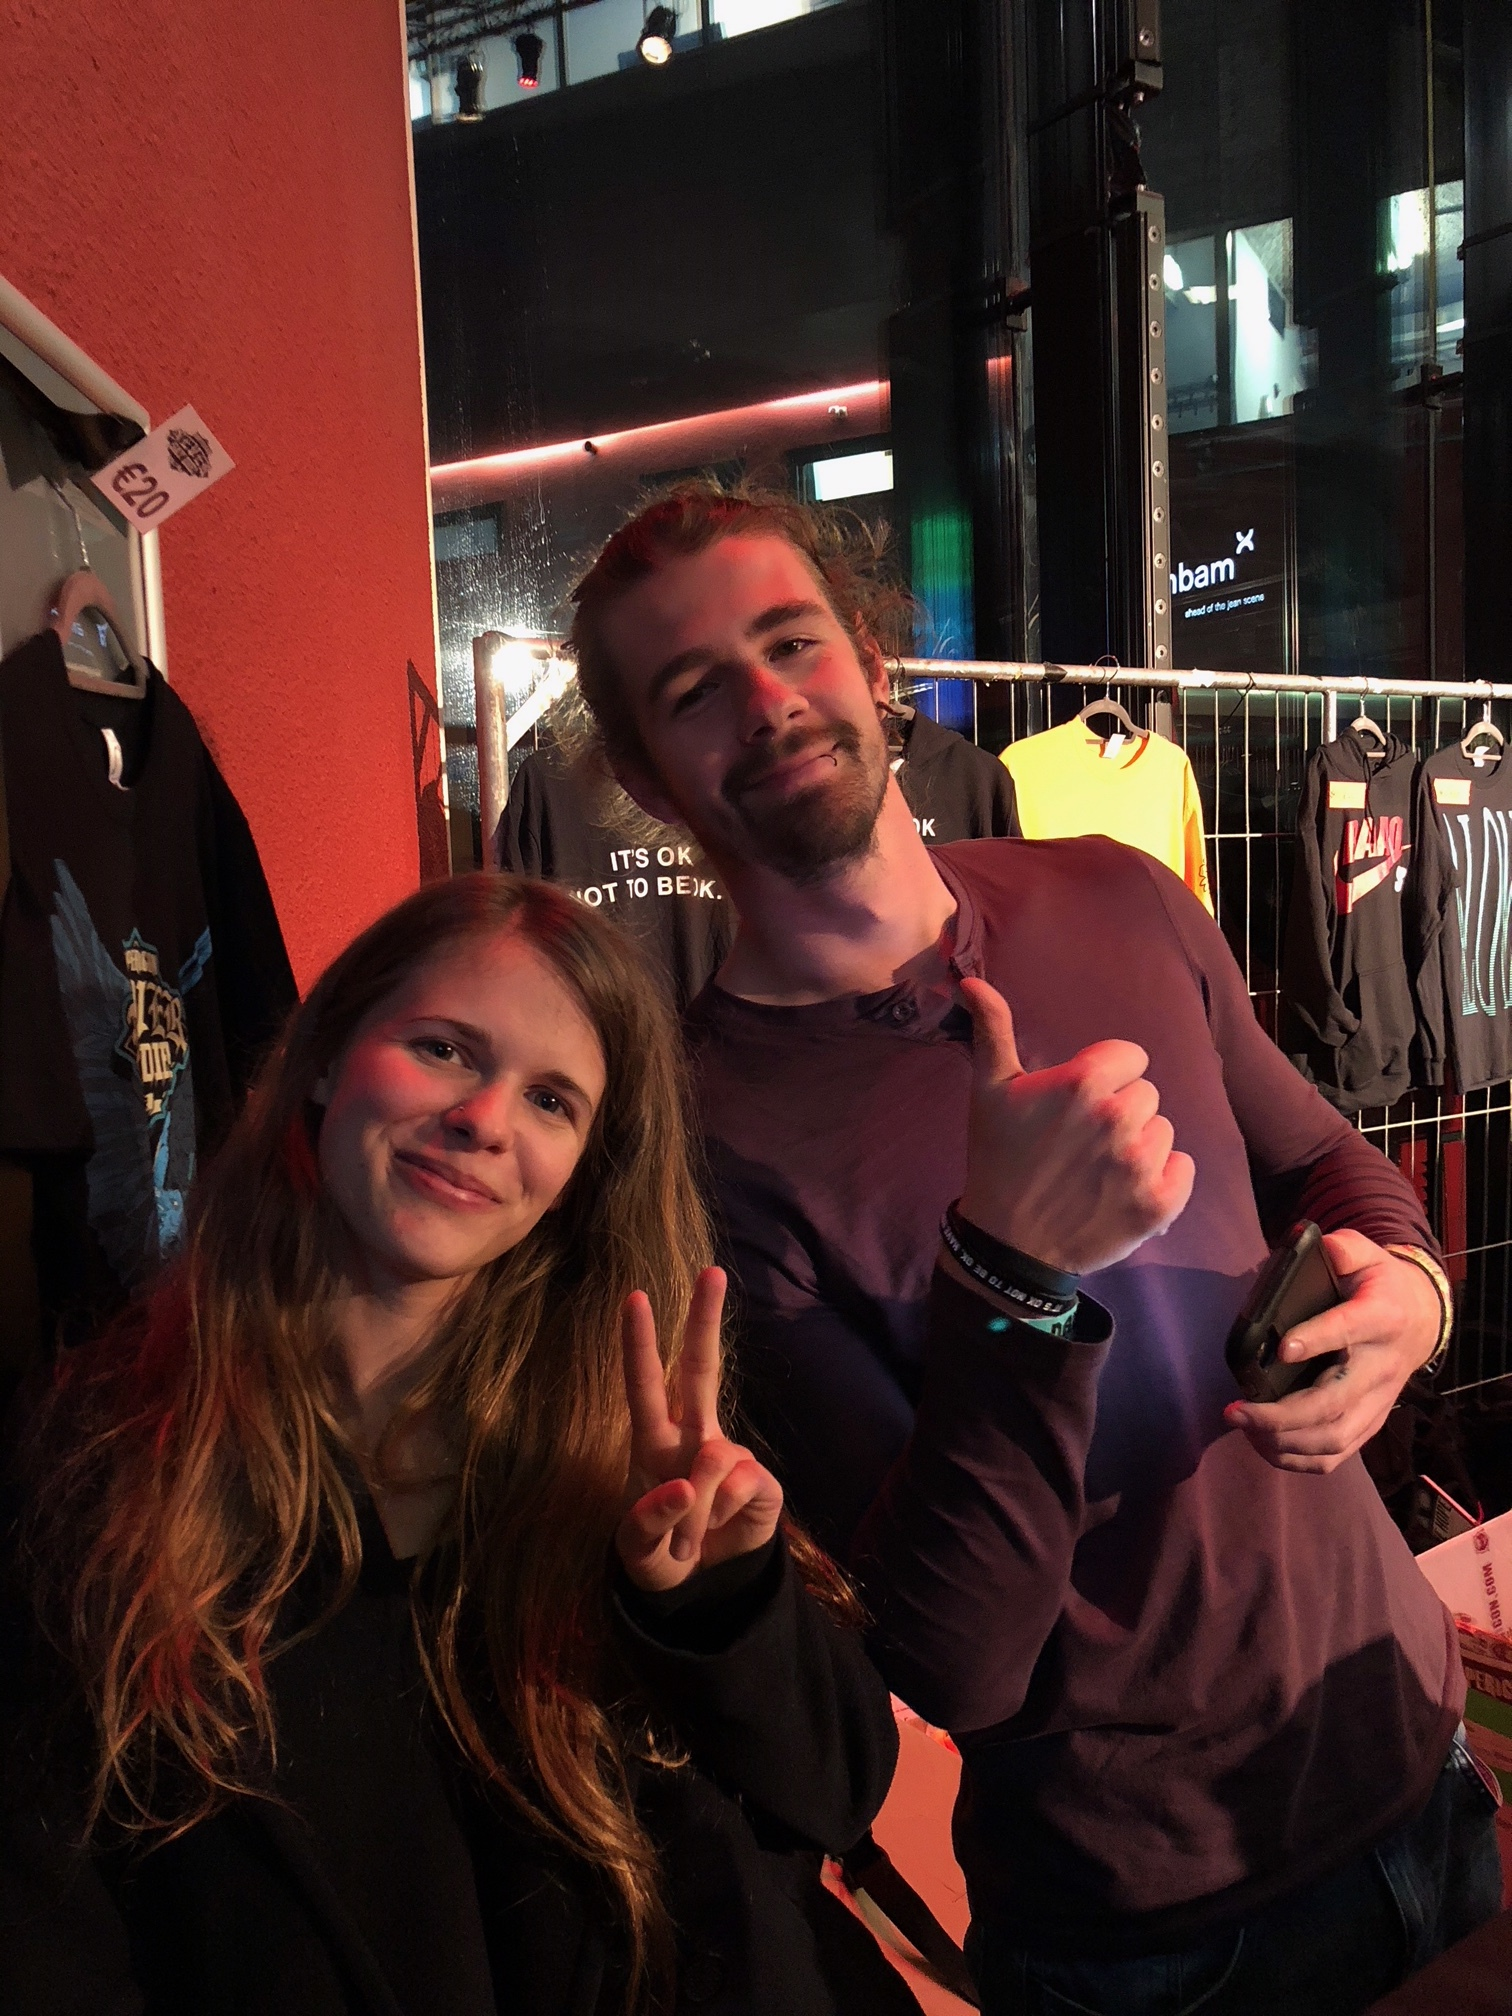 HFTD volunteers, Brent and Chelsea work to provide outreach and education in Eindhoven (NL)